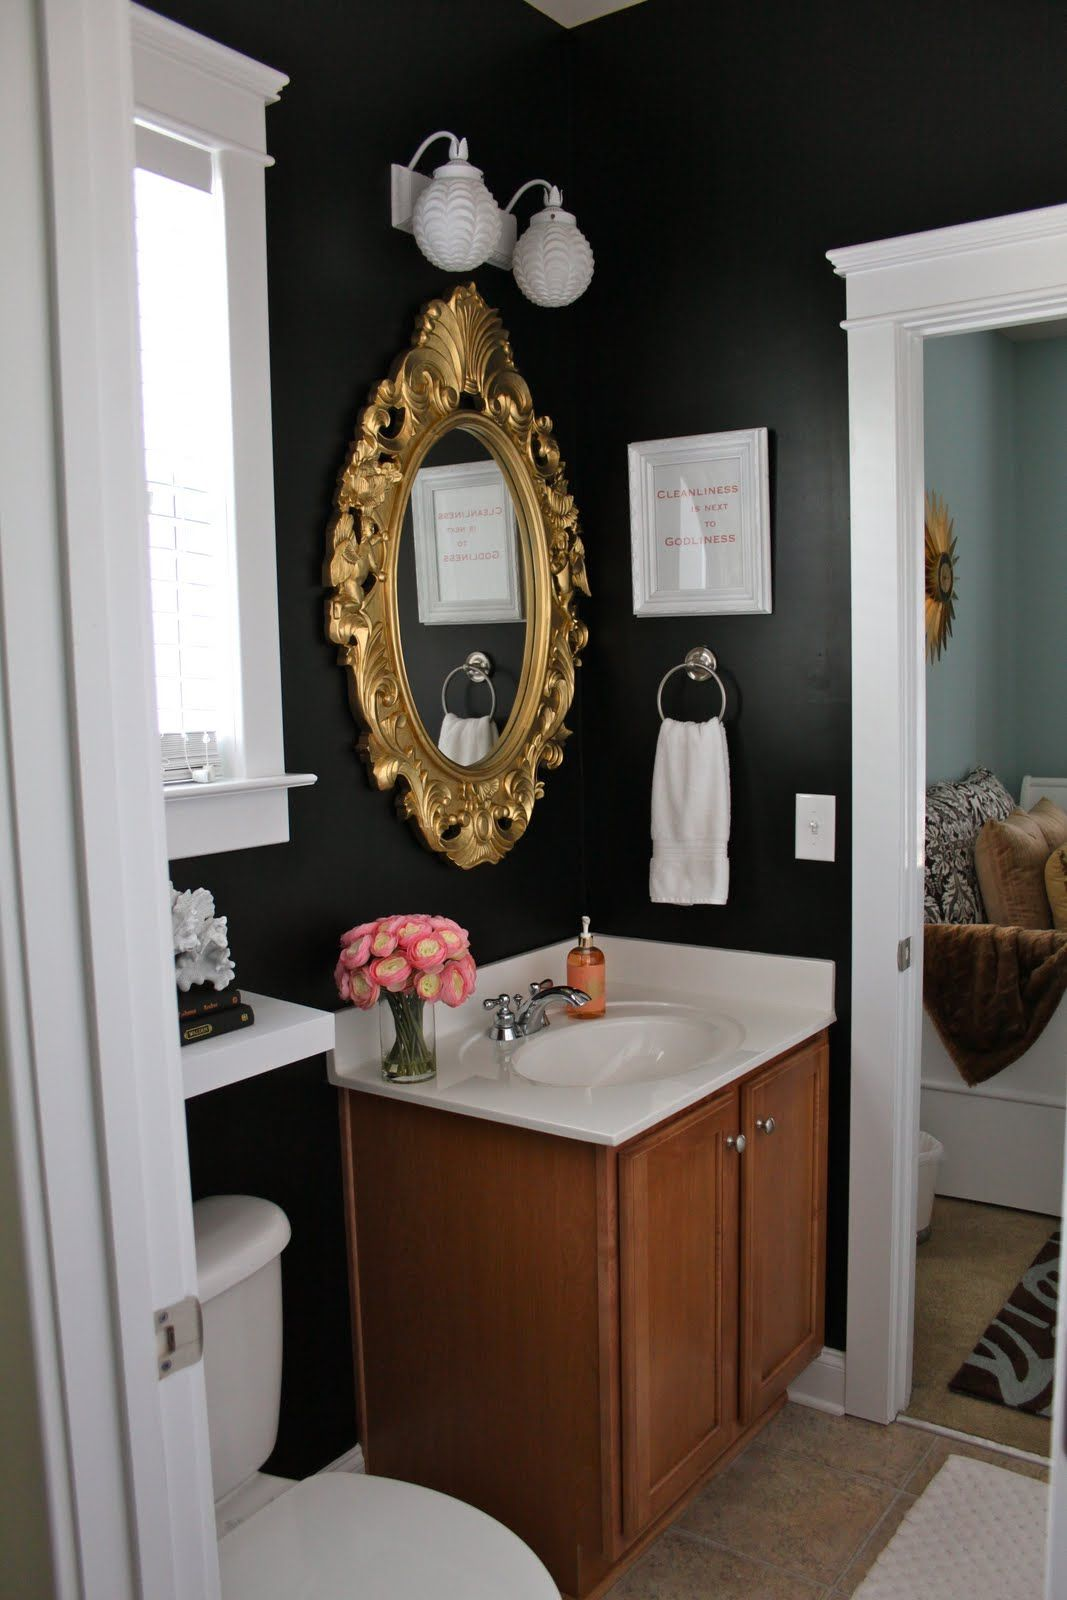 Black Walls In The Bathroom With Gold Framed Mirror